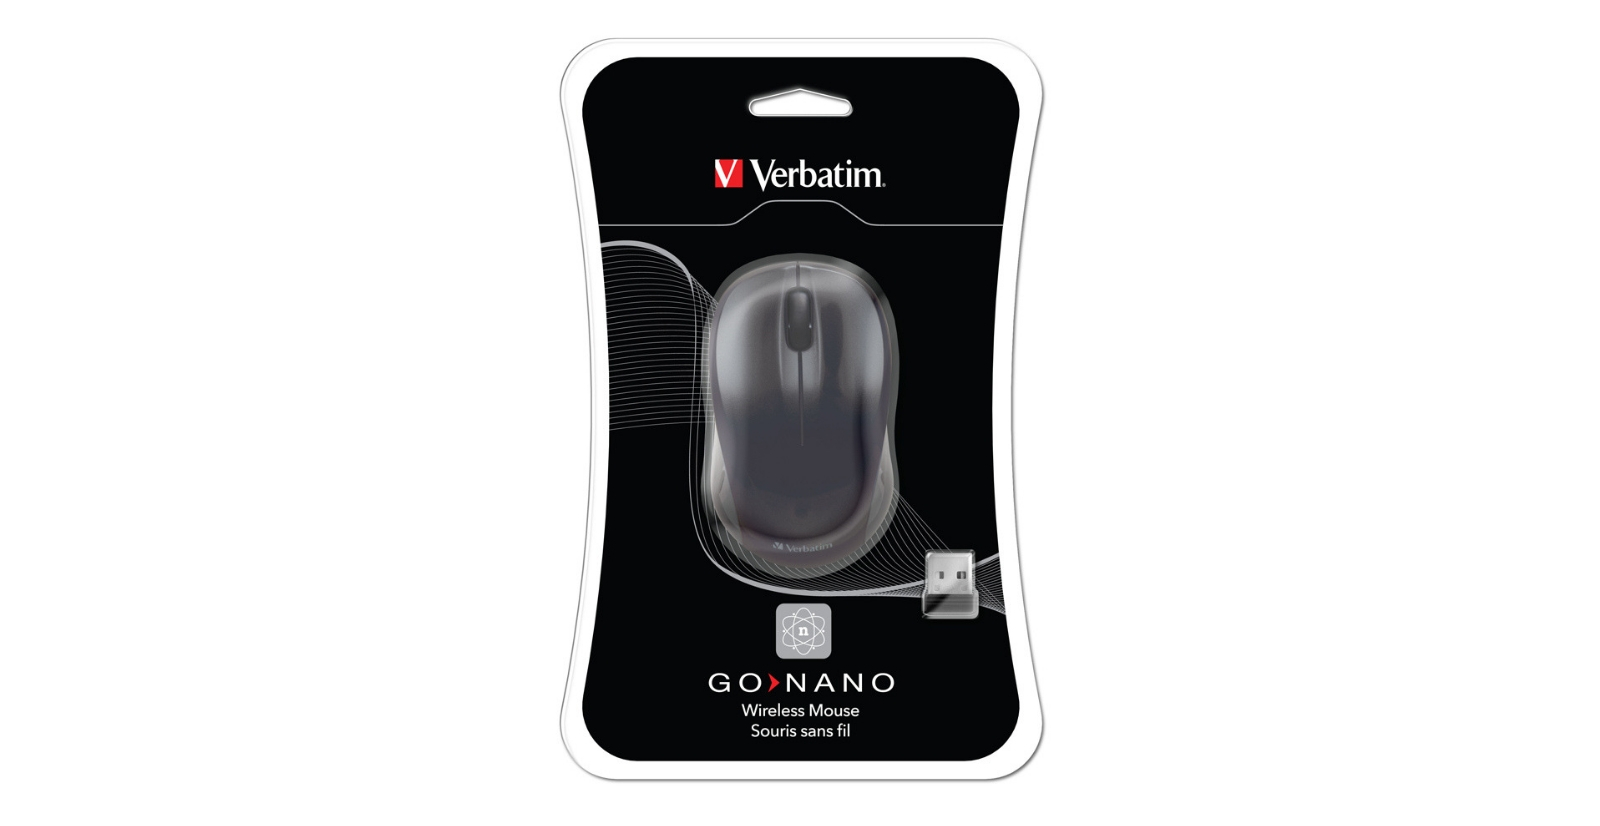 Verbatim Part 49042 Verbatim GO NANO Wireless Mouse - Black